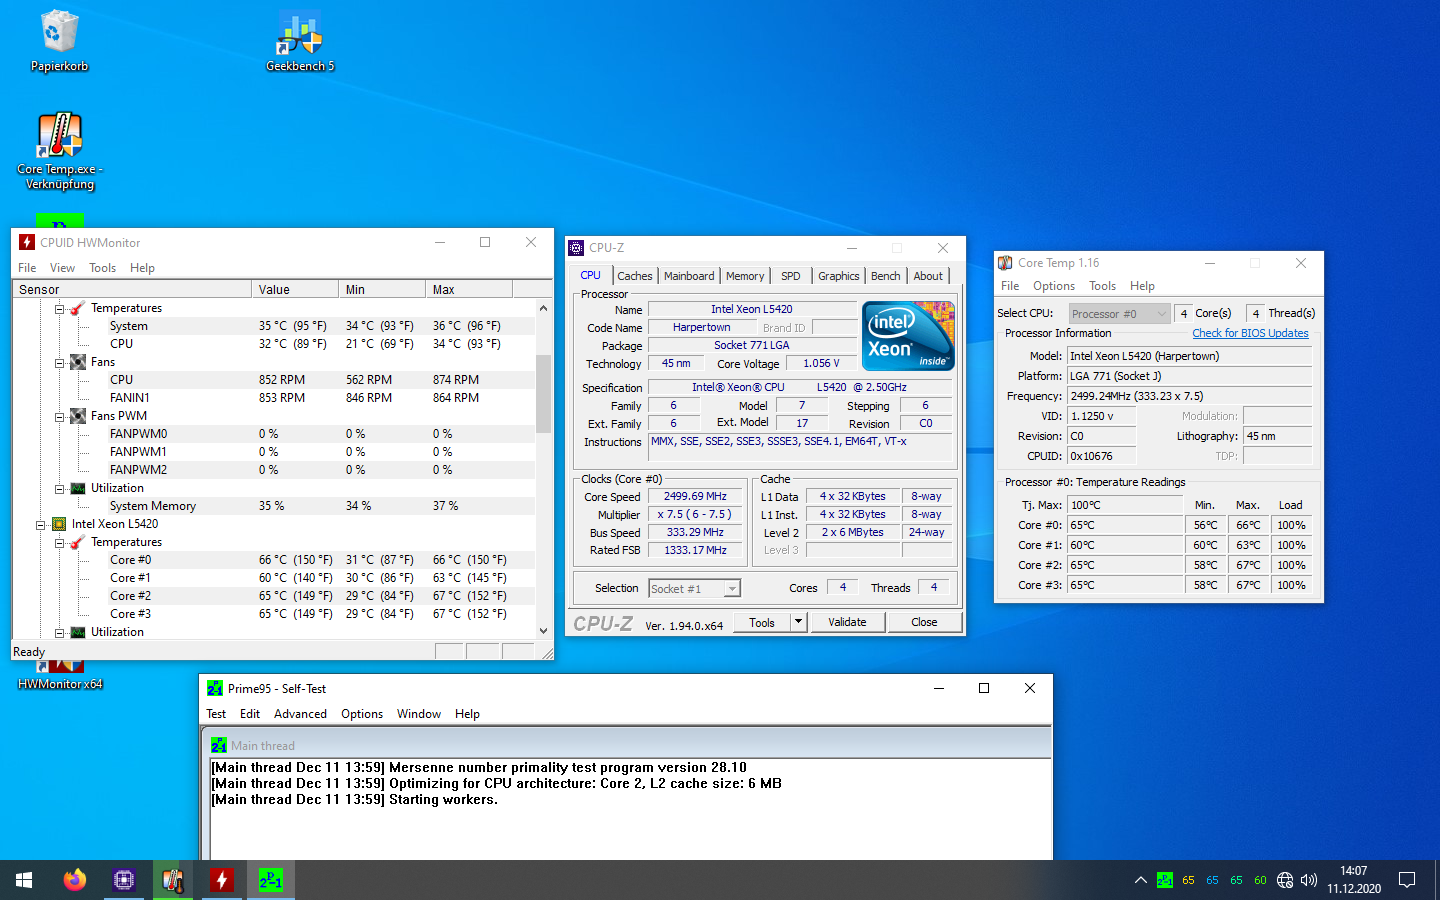 xeon-L5420-load-stock.png